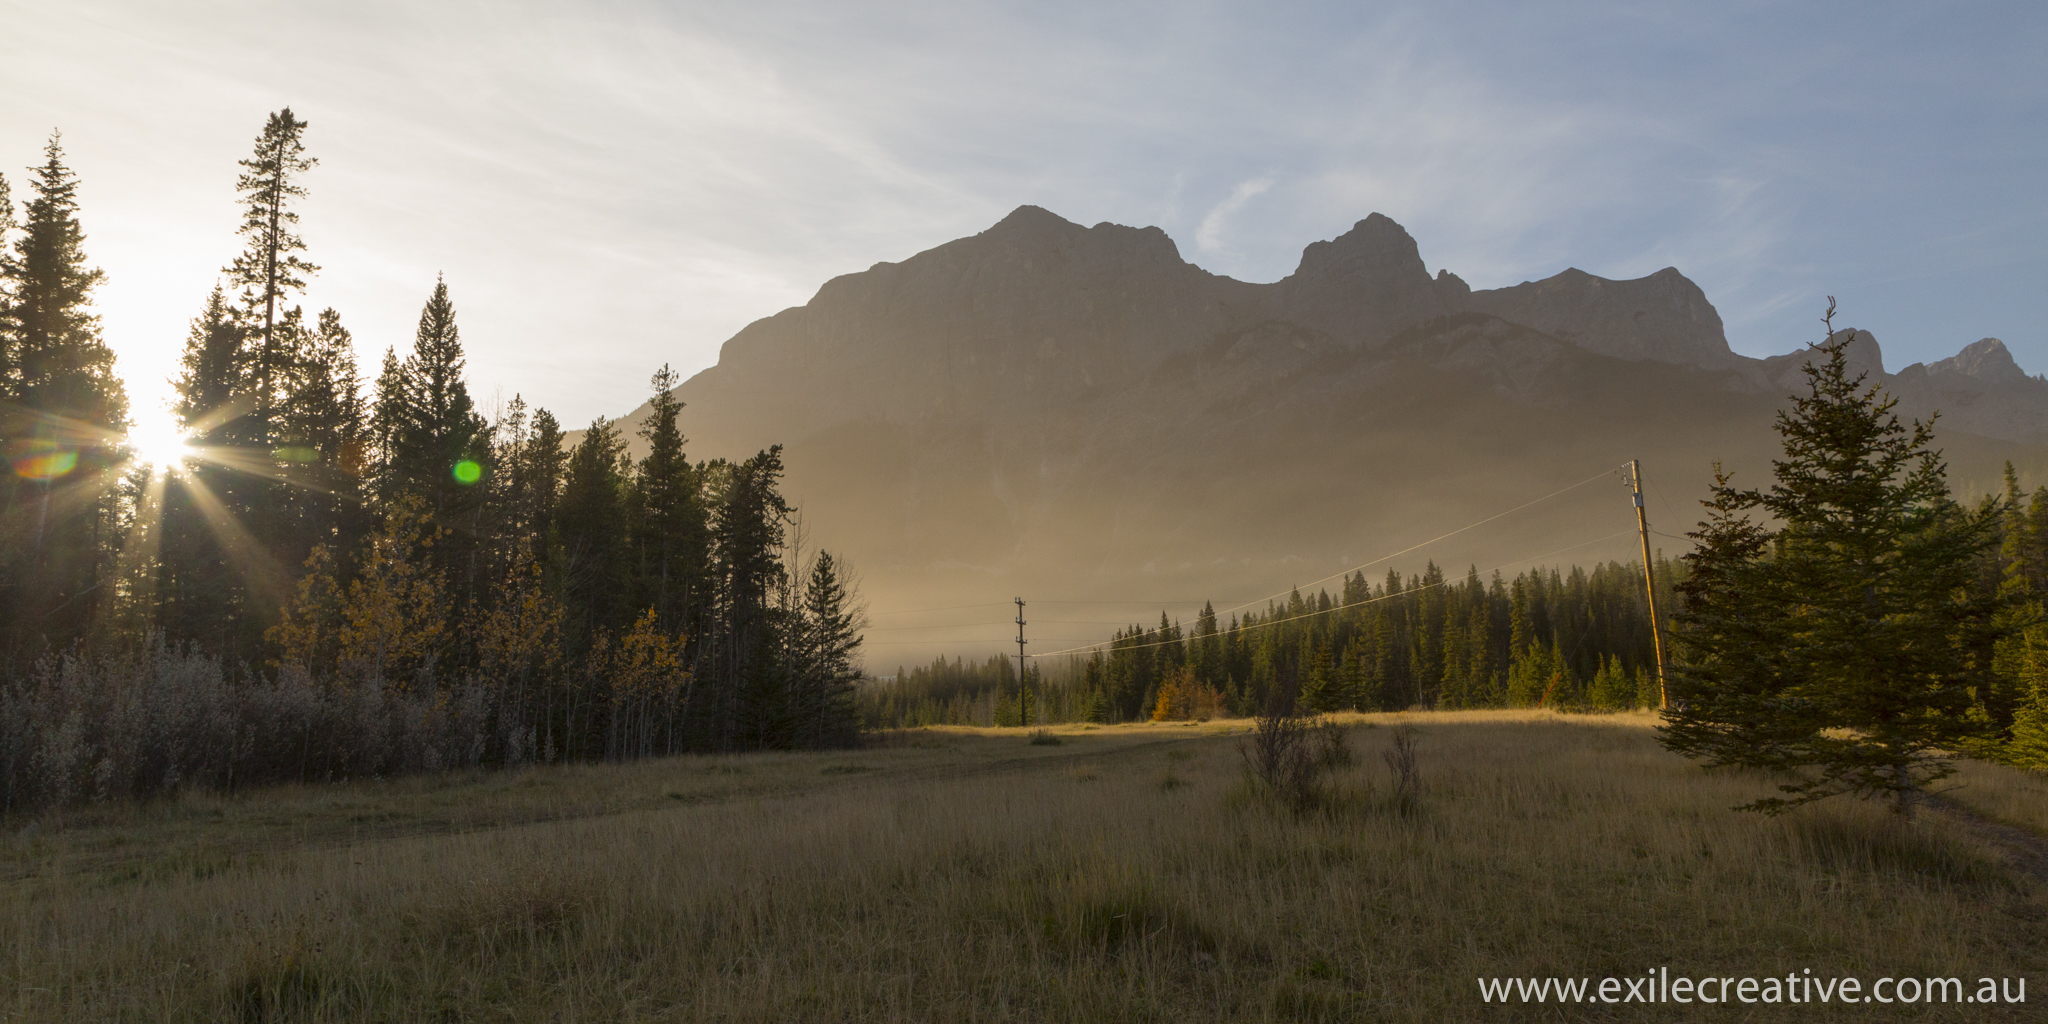 The dog park in Canmore